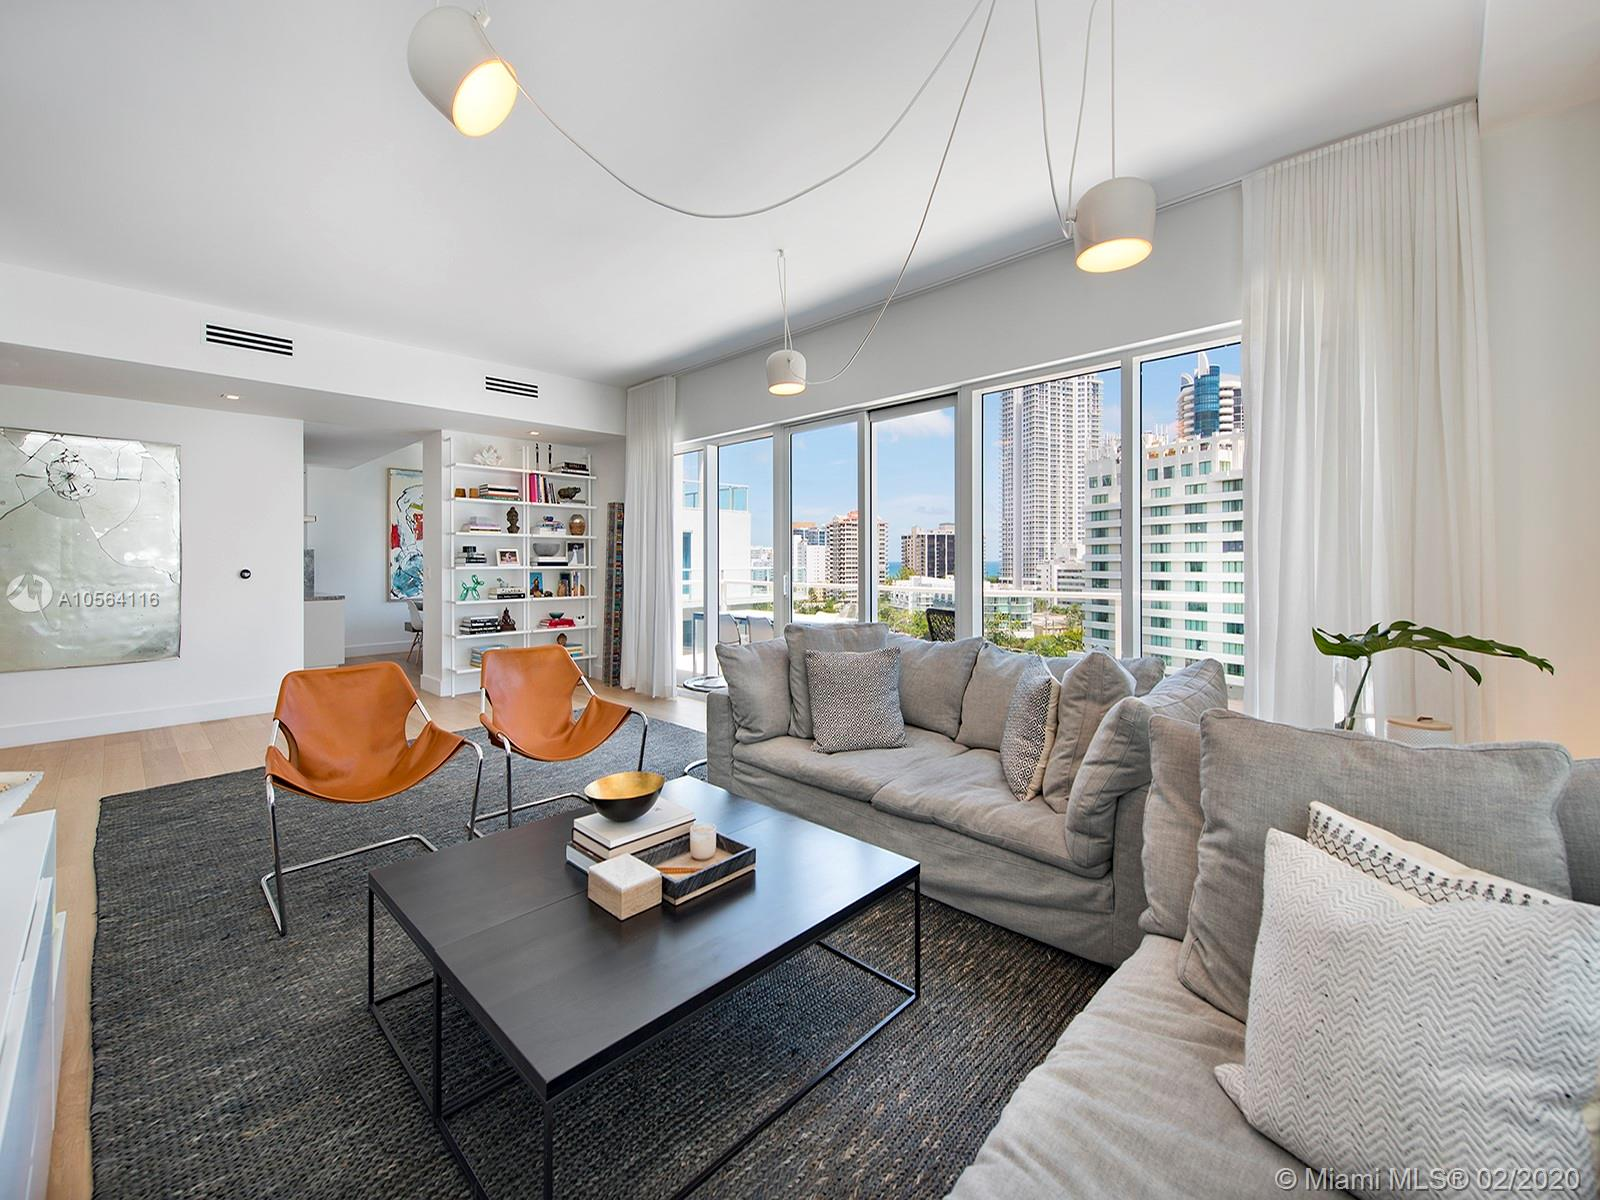 Breathtaking ocean, intracoastal and Miami Skyline views from this tastefully remodeled corner unit at the Spear building. This 3-bed/3.5-bath residence offers exquisite finishes including wood floors, white marble countertops, Wolf appliances and Italkraft kitchen cabinets. Access luxury amenities including a north and south pool, state-of-the-art fitness center, hot tub and child's play area. This gated island community is situated on 8.5 acres in close proximity to fine dining and shopping. Includes 2 assigned parking spaces: 151 and 207.